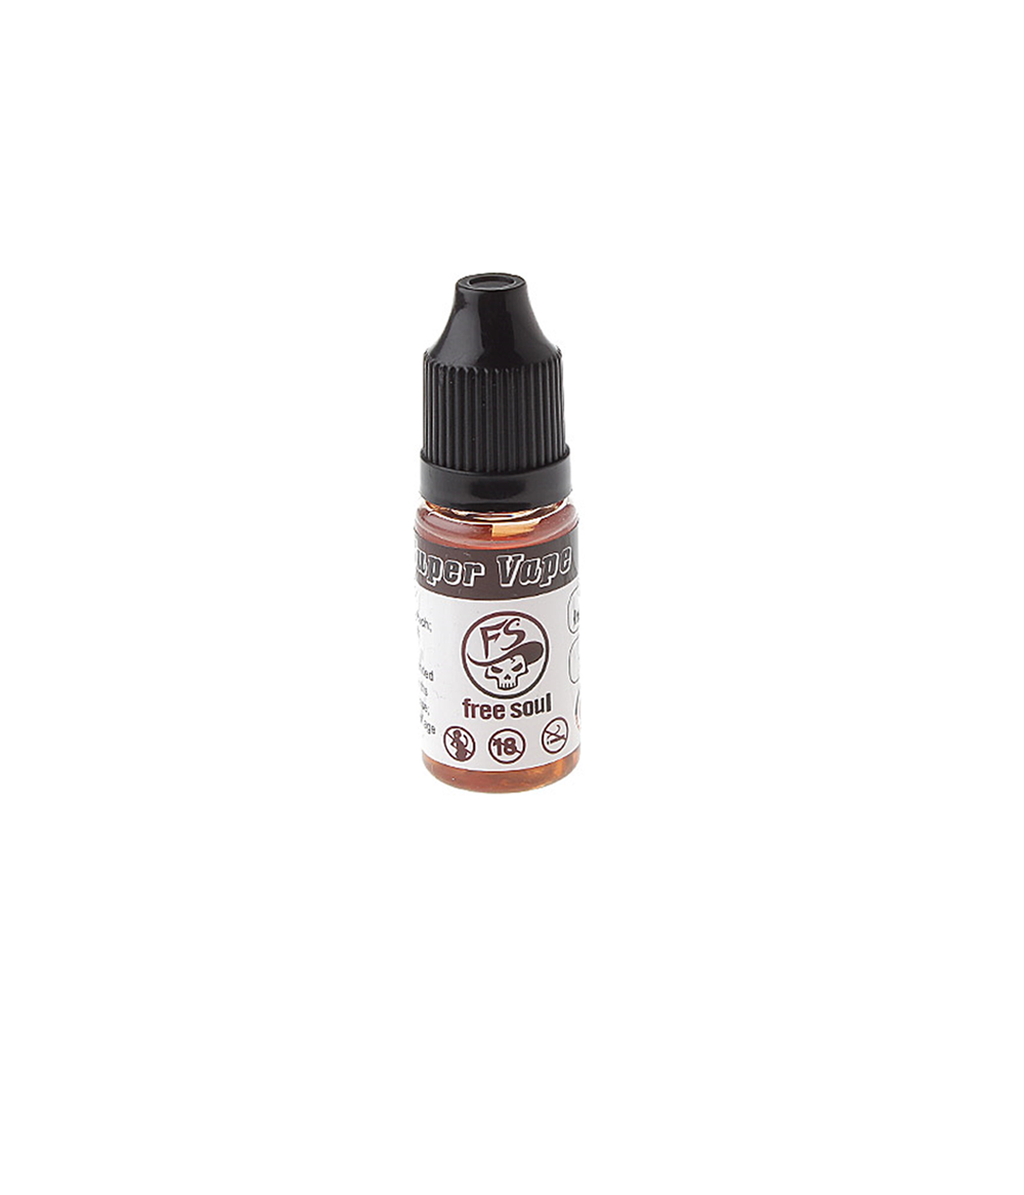 Free Soul Watermelon Vape Juice 10ml CLEARANCE